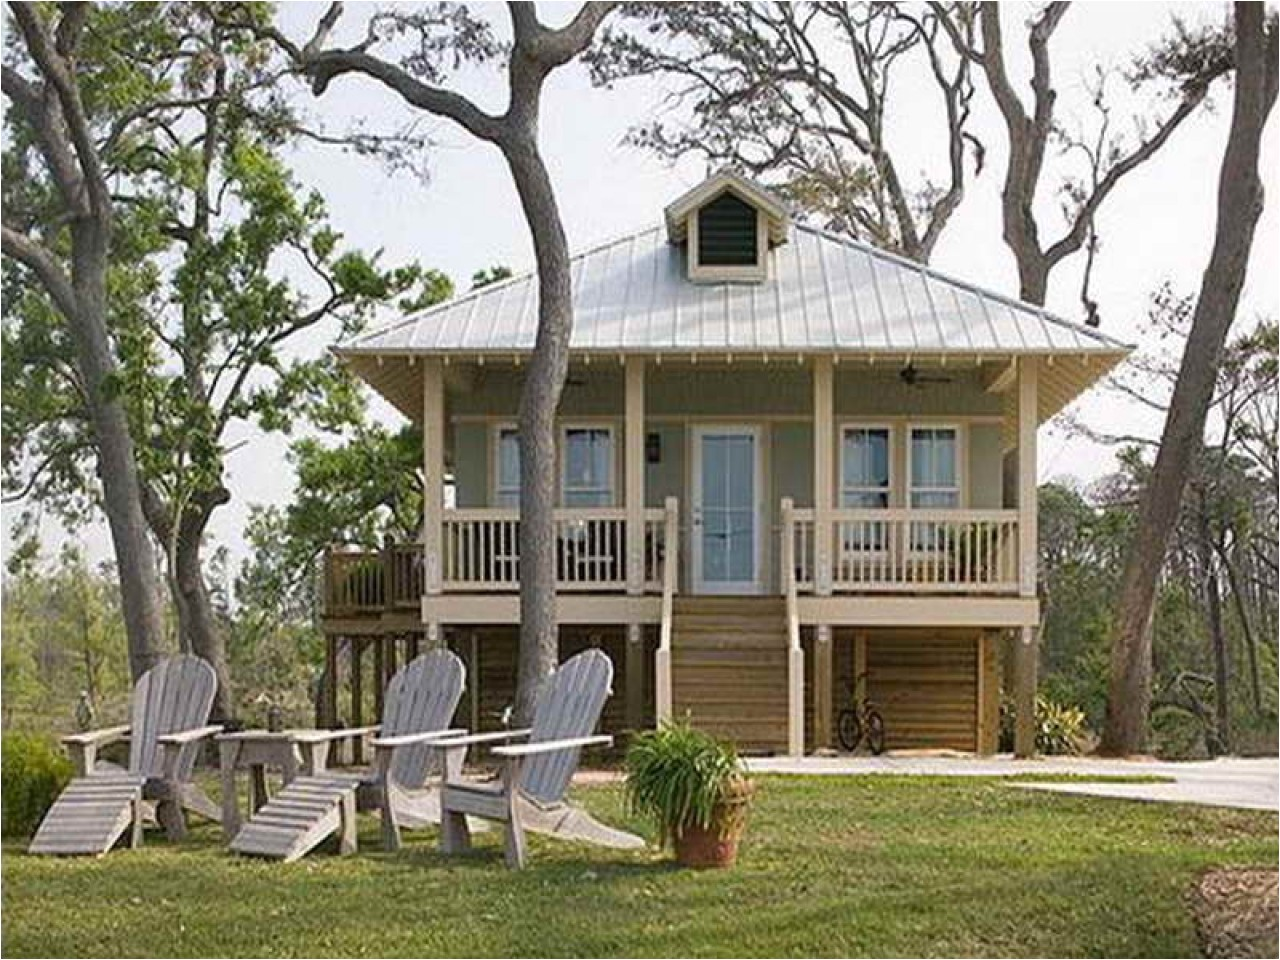 8eeebde49792c866 small beach cottage house plans small florida gulf coast cottages